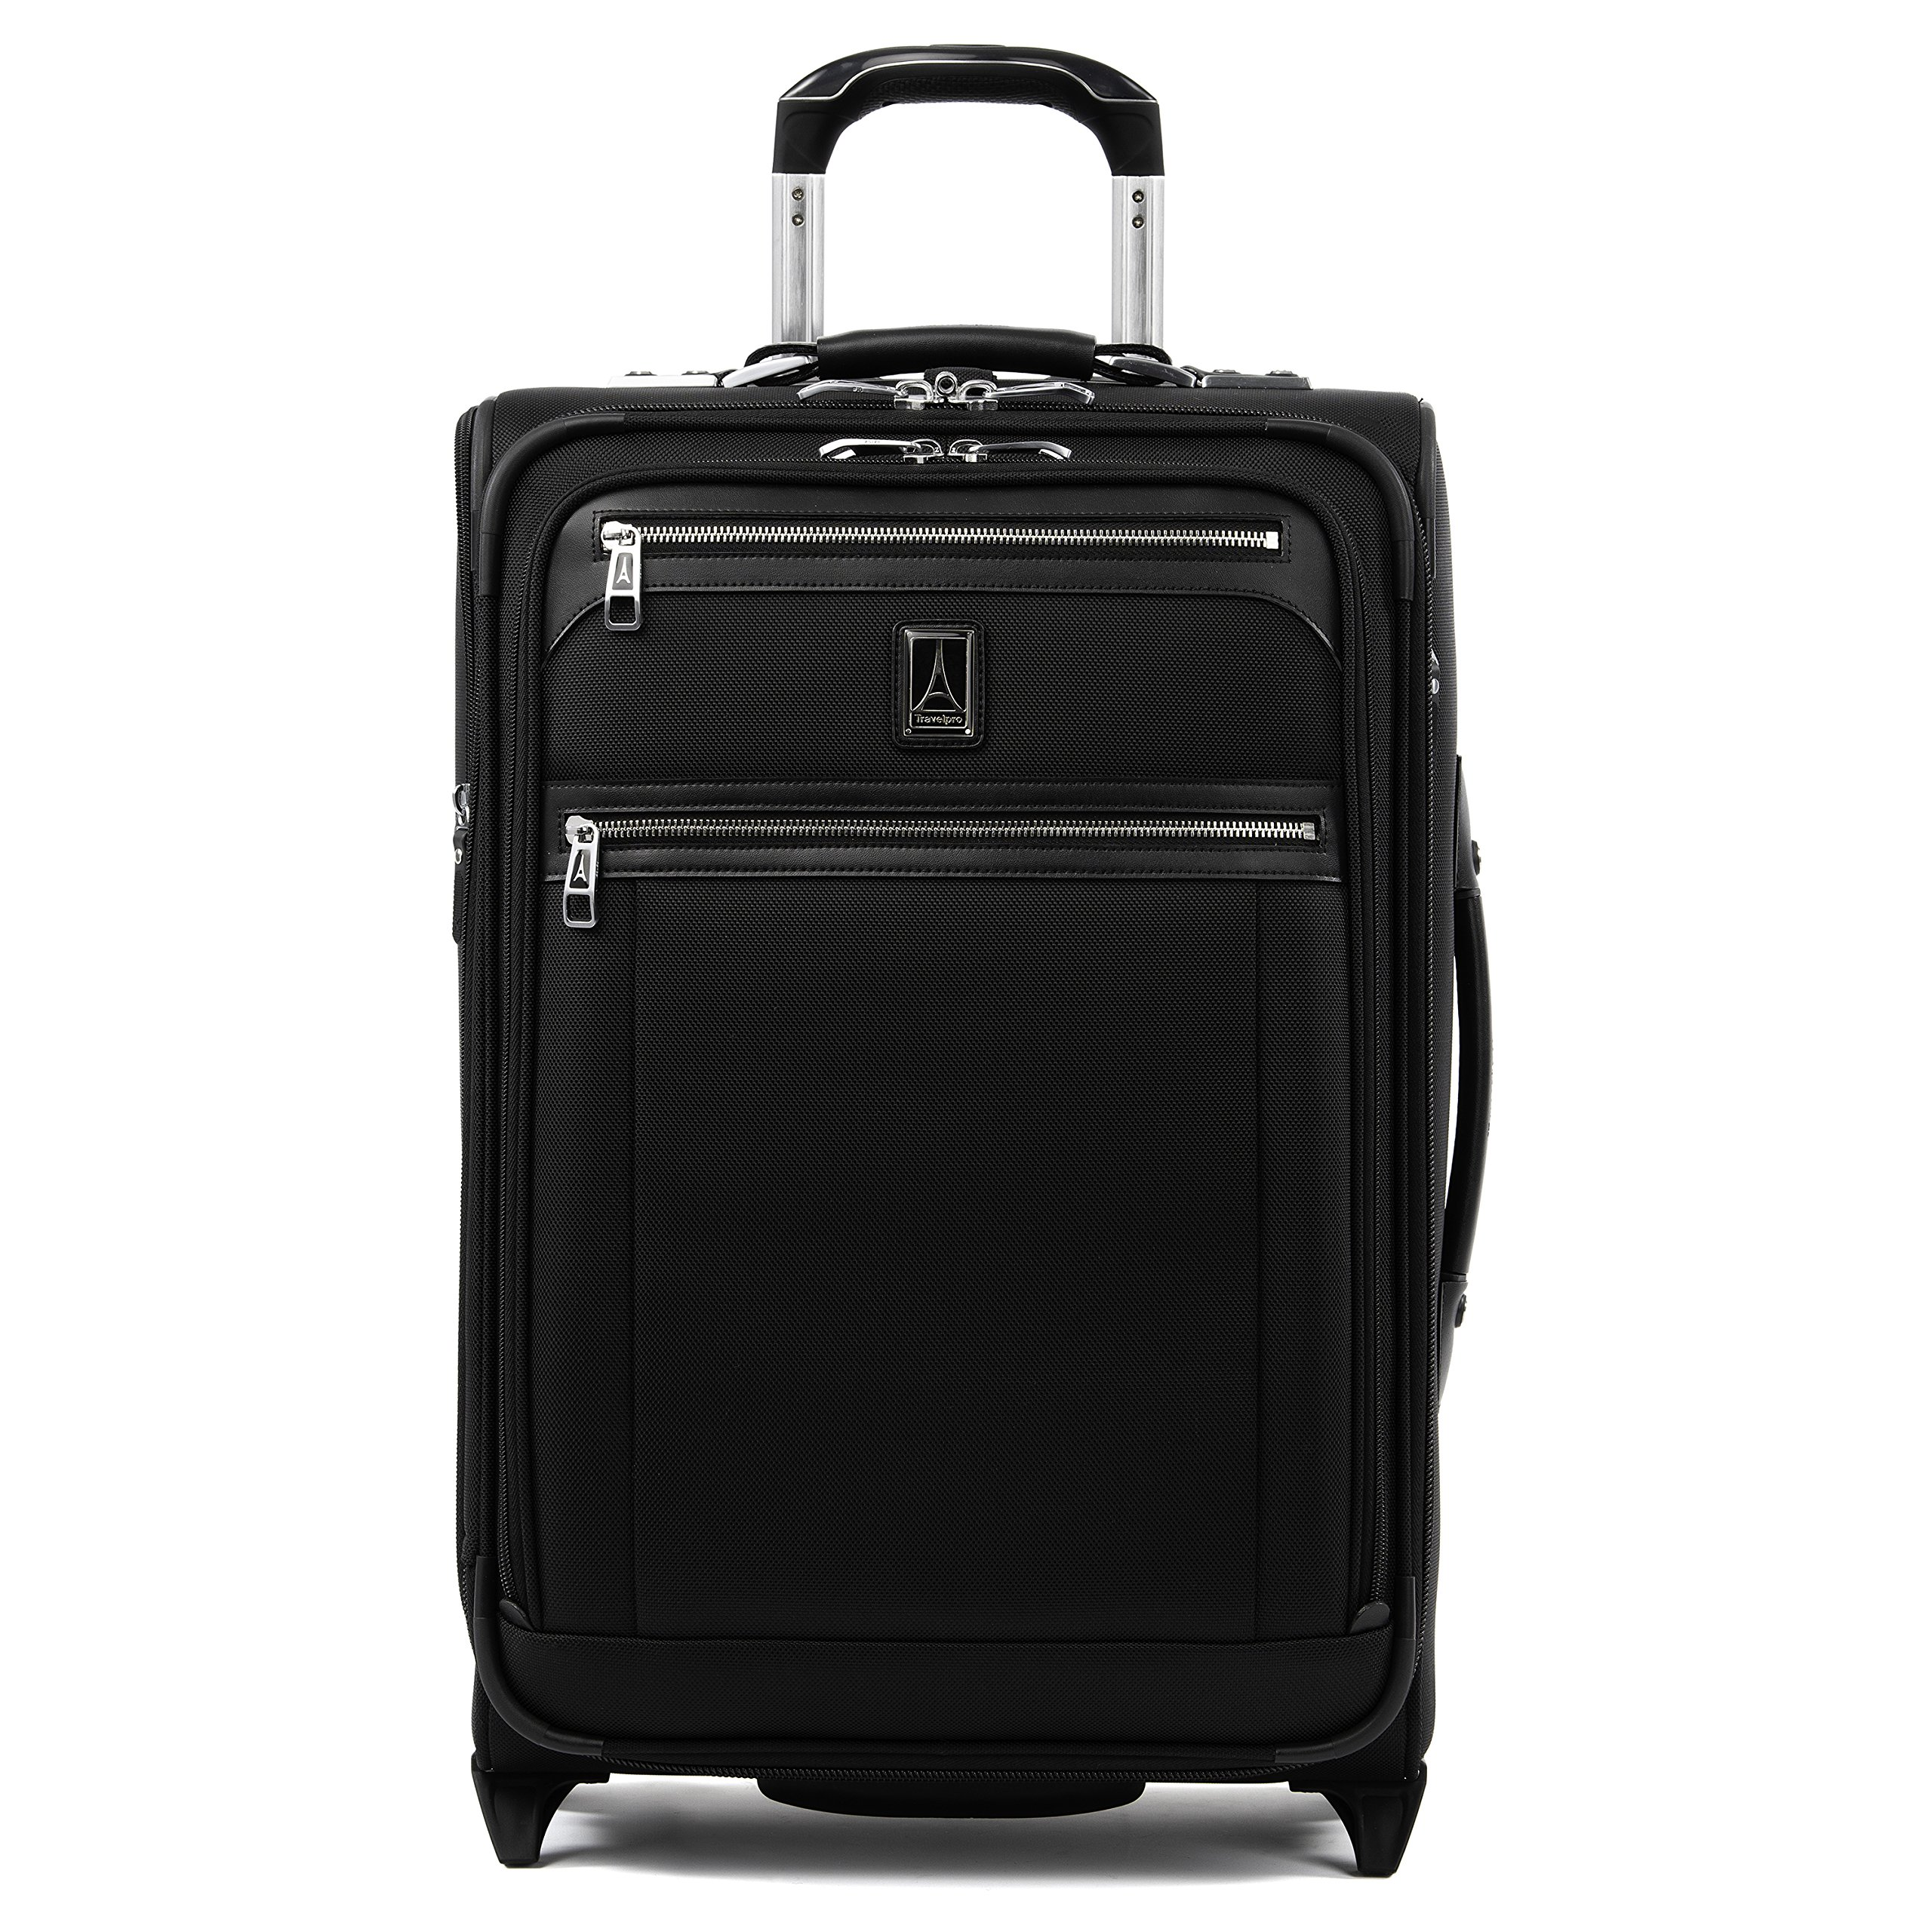 Travelpro Luggage Platinum Expandable Rollaboard